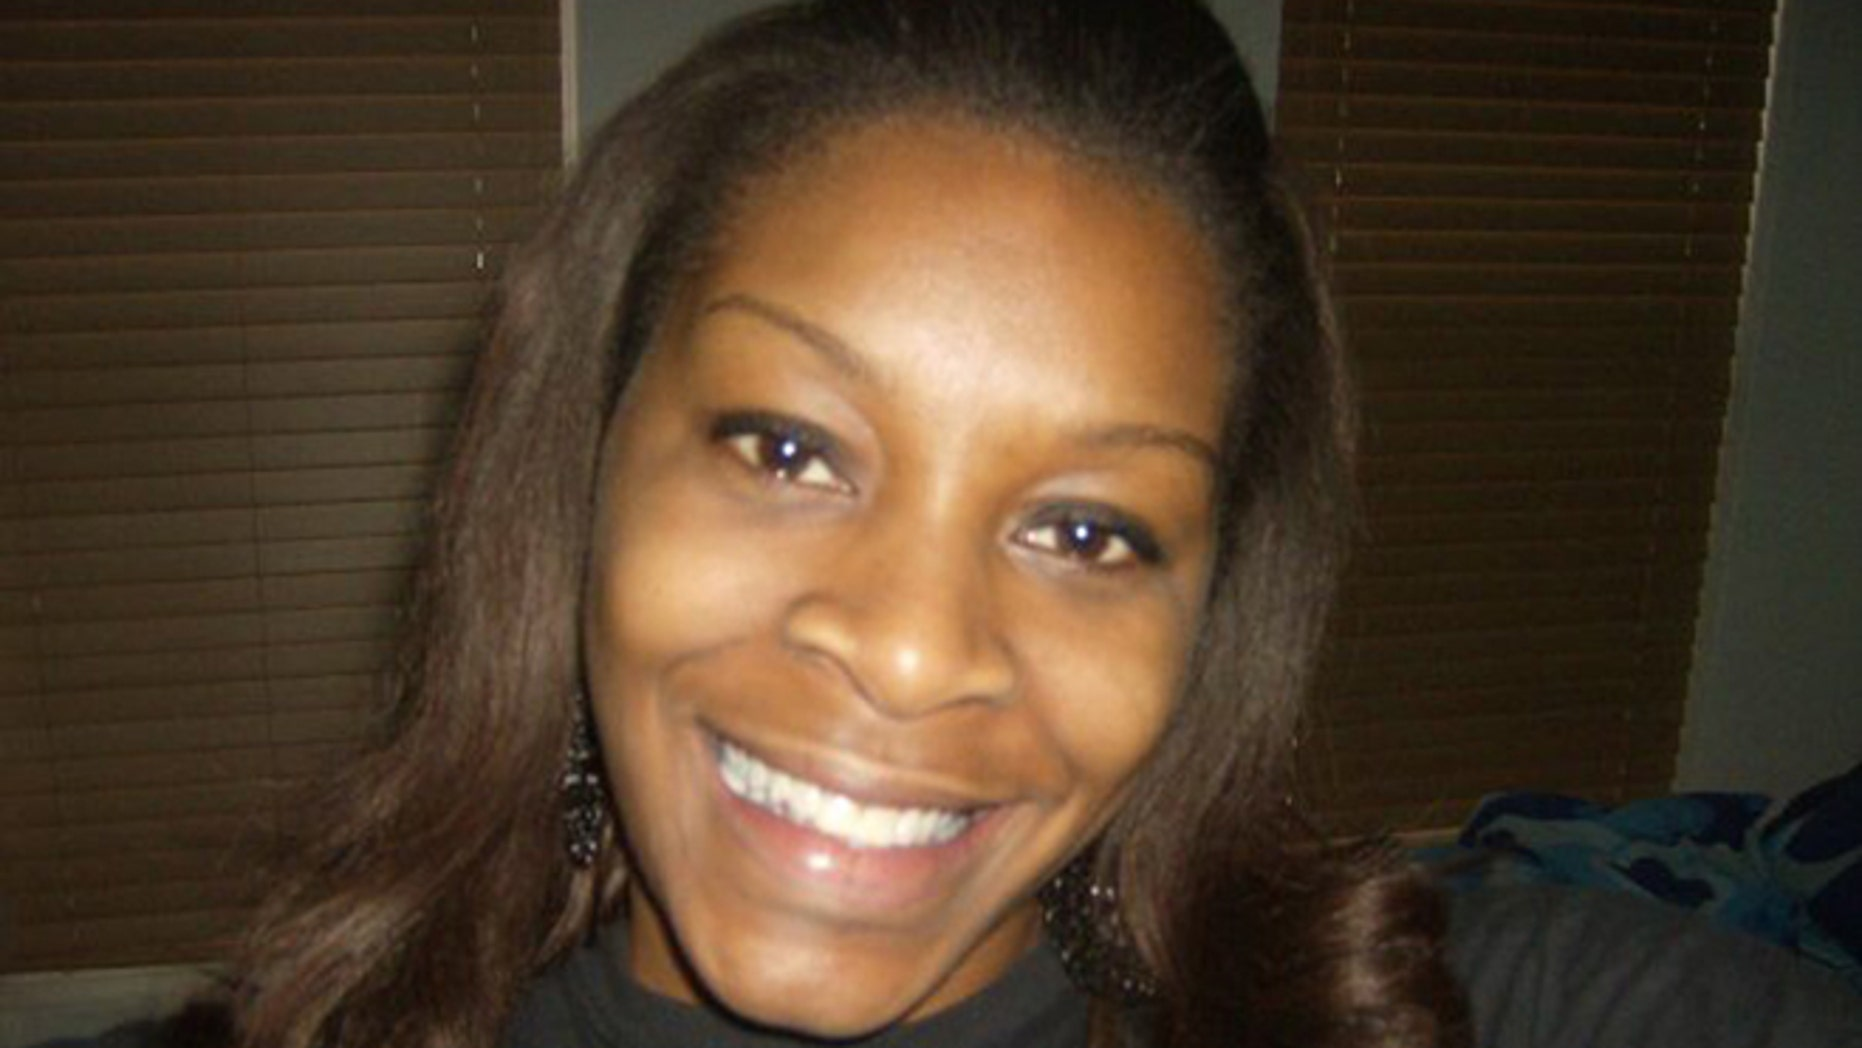 FILE - In this undated photo provided by the Bland family, Sandra Bland poses for a photo. A grand jury indicted Trooper Brian Encinia on Wednesday, Jan. 6, 2016, with the misdemeanor charge. Encinia has been on desk duty since Bland was found dead in her cell in July. Her death was ruled a suicide. (Courtesy of Bland family via AP, File)